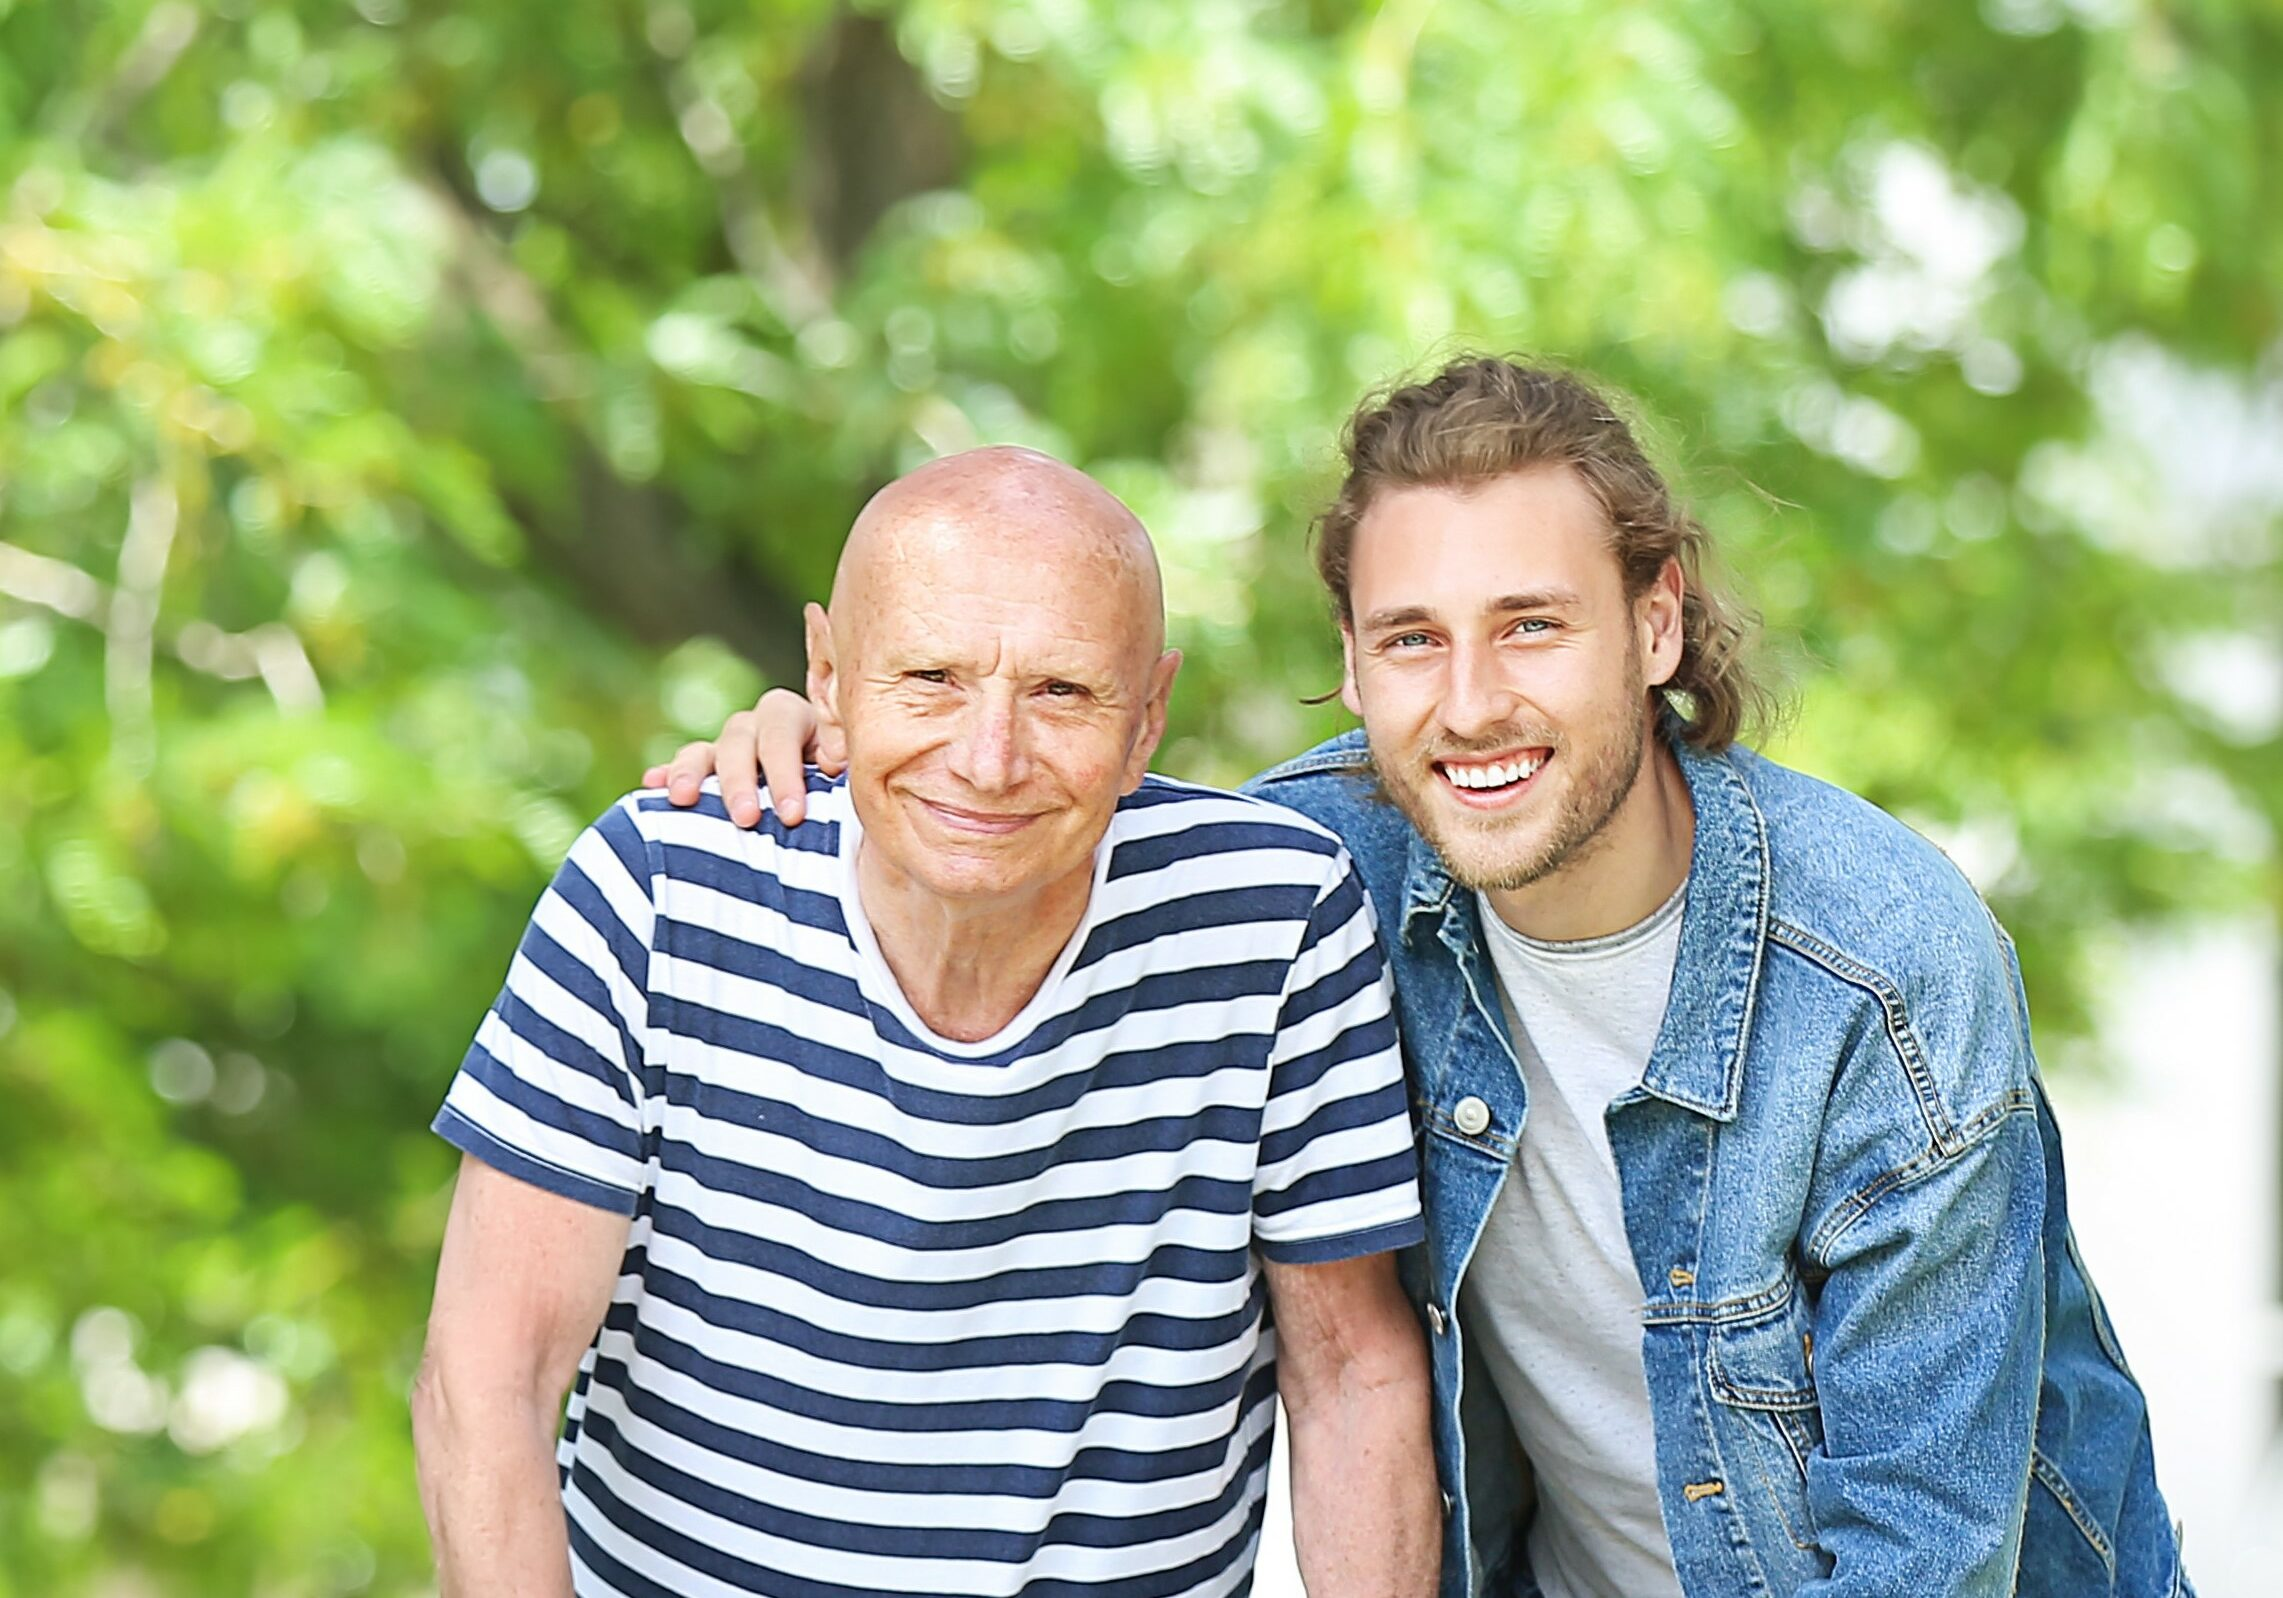 Elderly man with his son in park